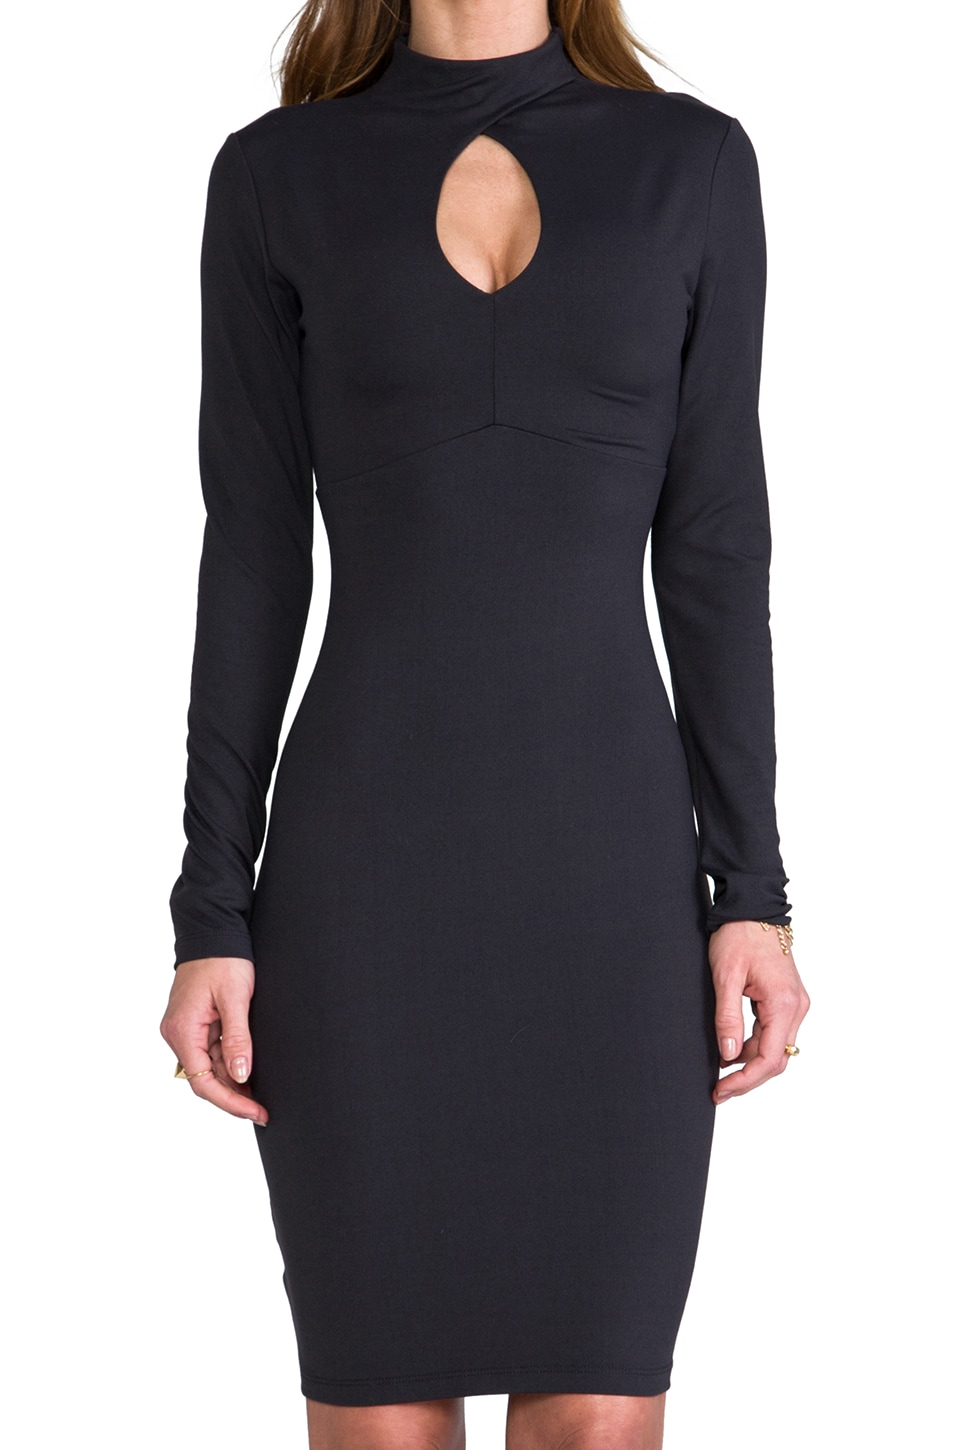 "Susana Monaco Tory 22"" Dress in Onyx"